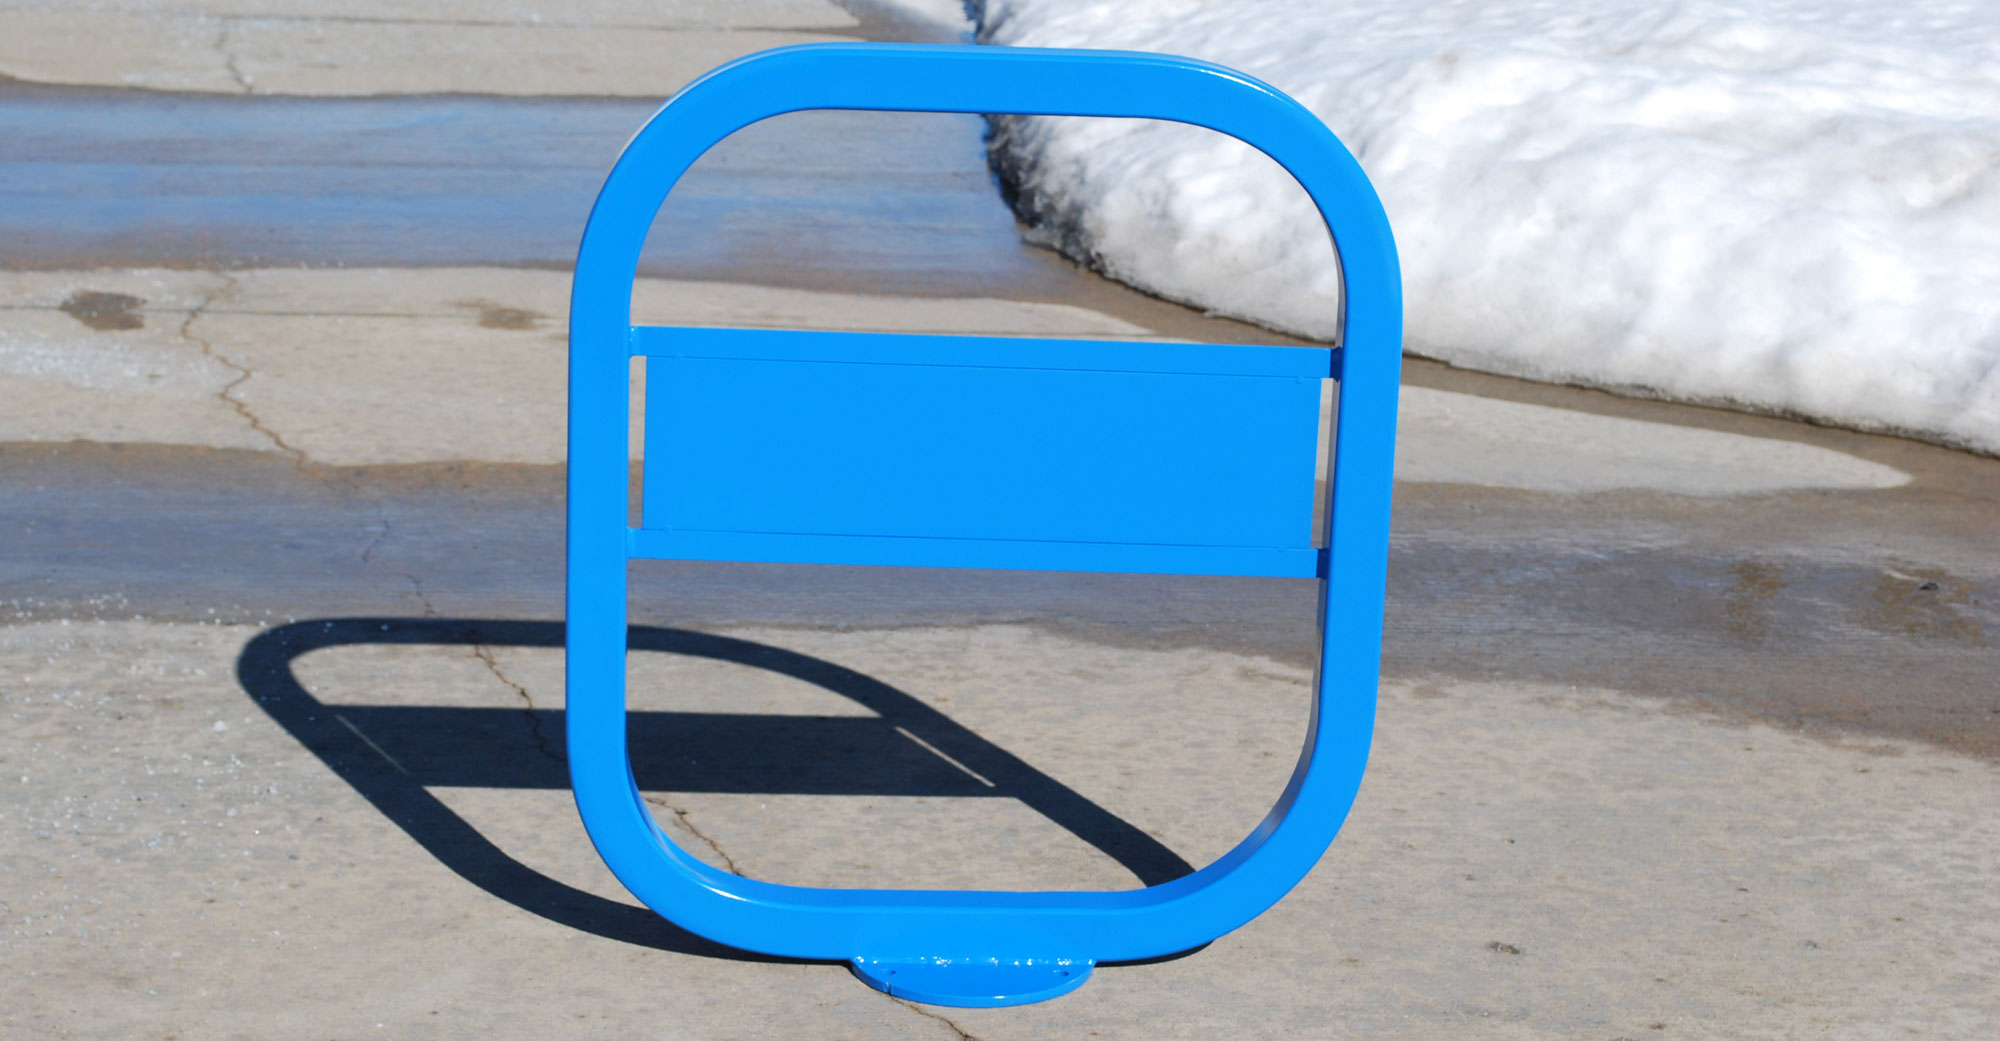 Custom-Bike-Rack-Social-Bike